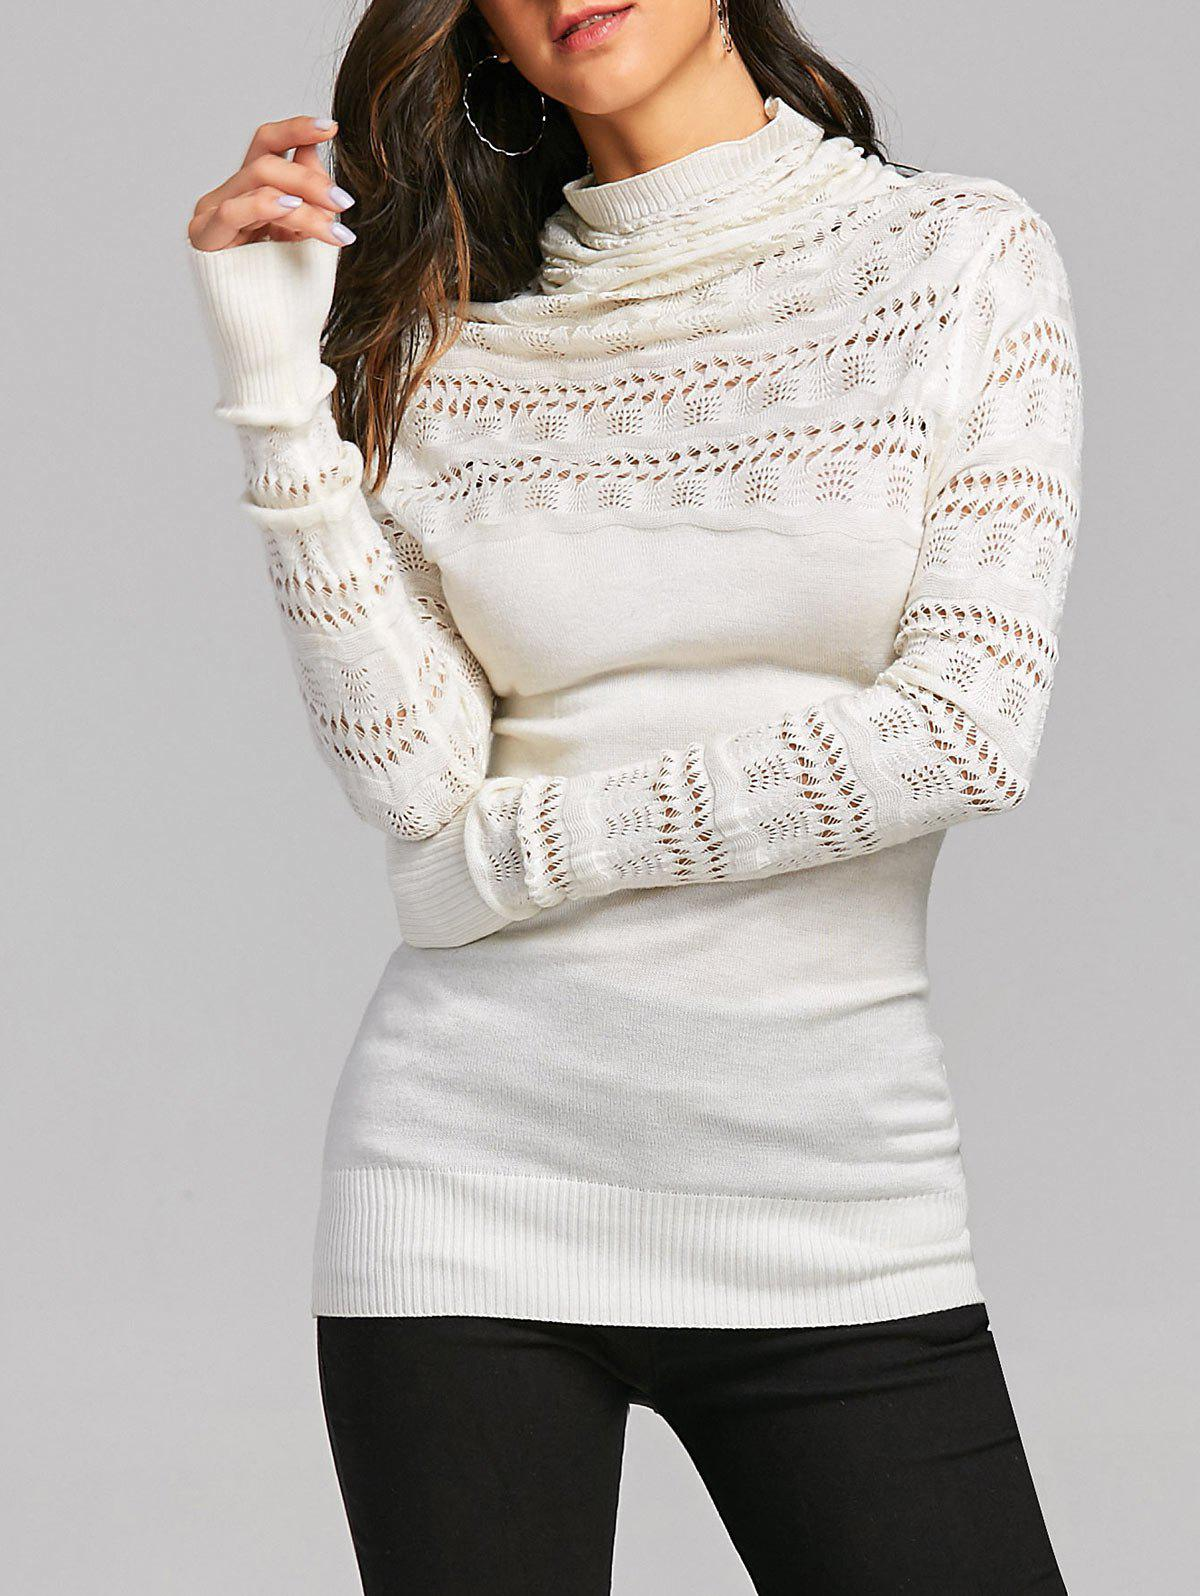 Cowl Neck Open Knitted Sweater 231509001